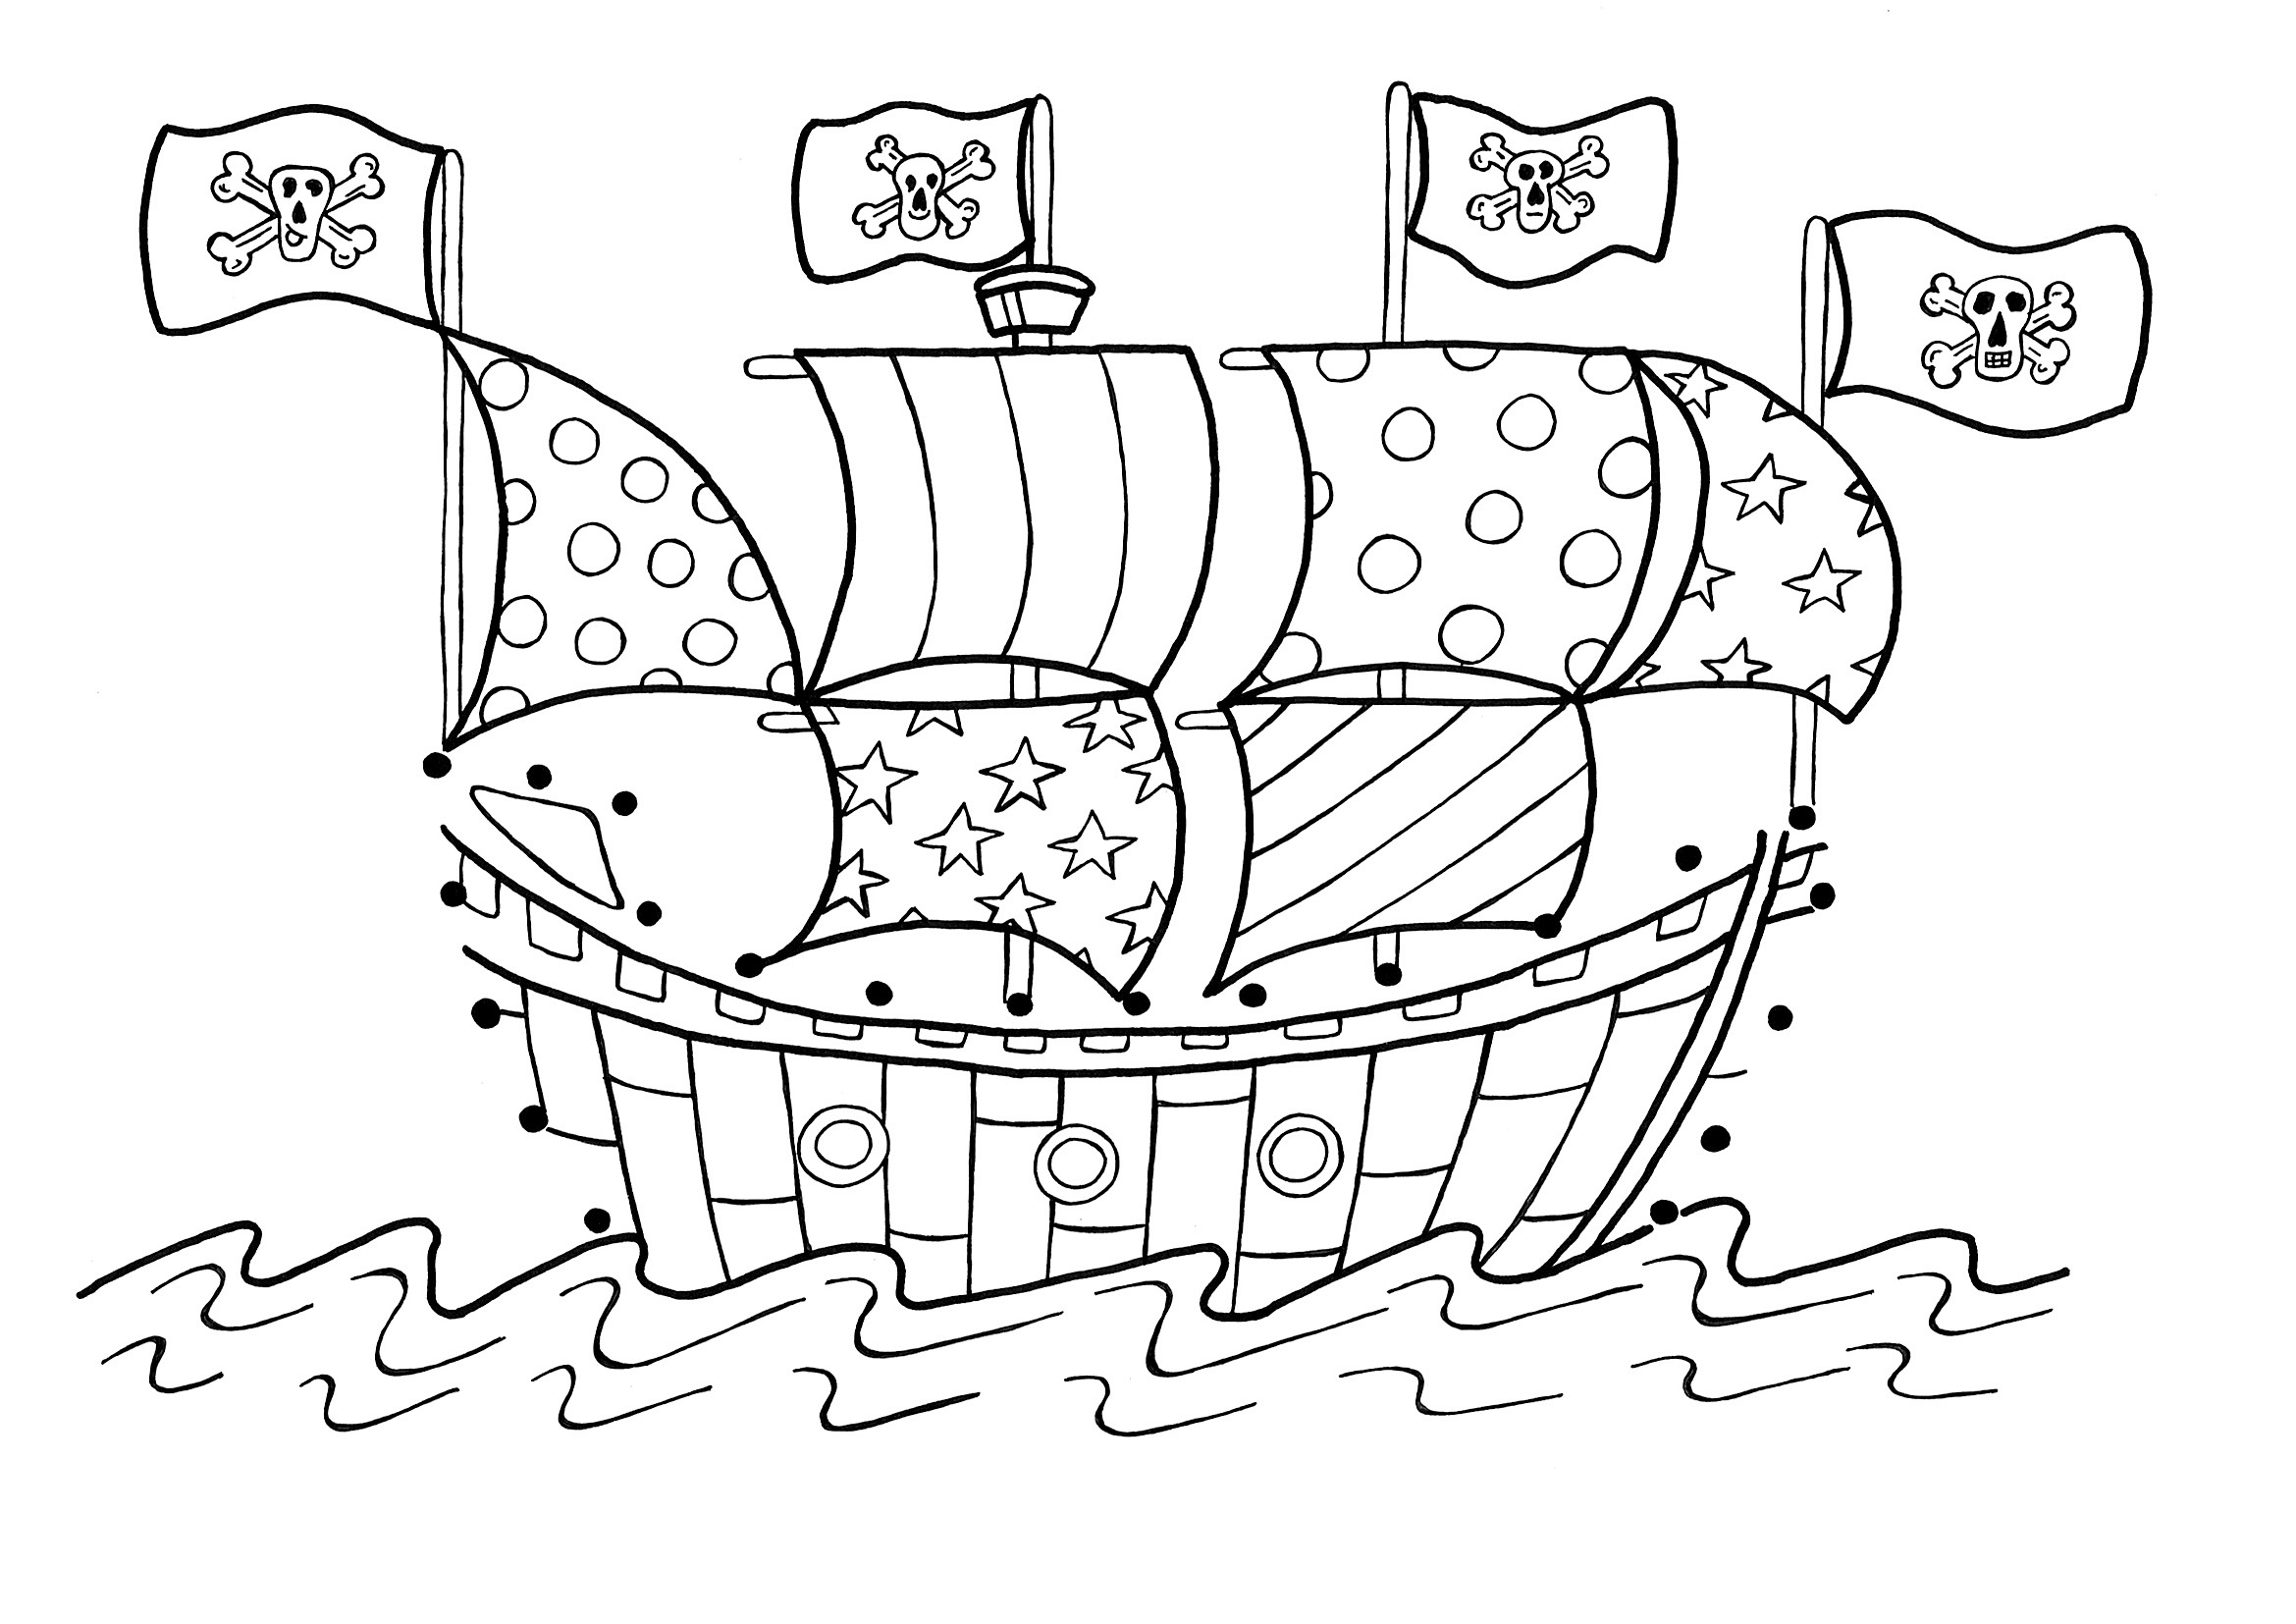 treasure chest coloring page treasure chest coloring page at getcoloringscom free treasure page chest coloring